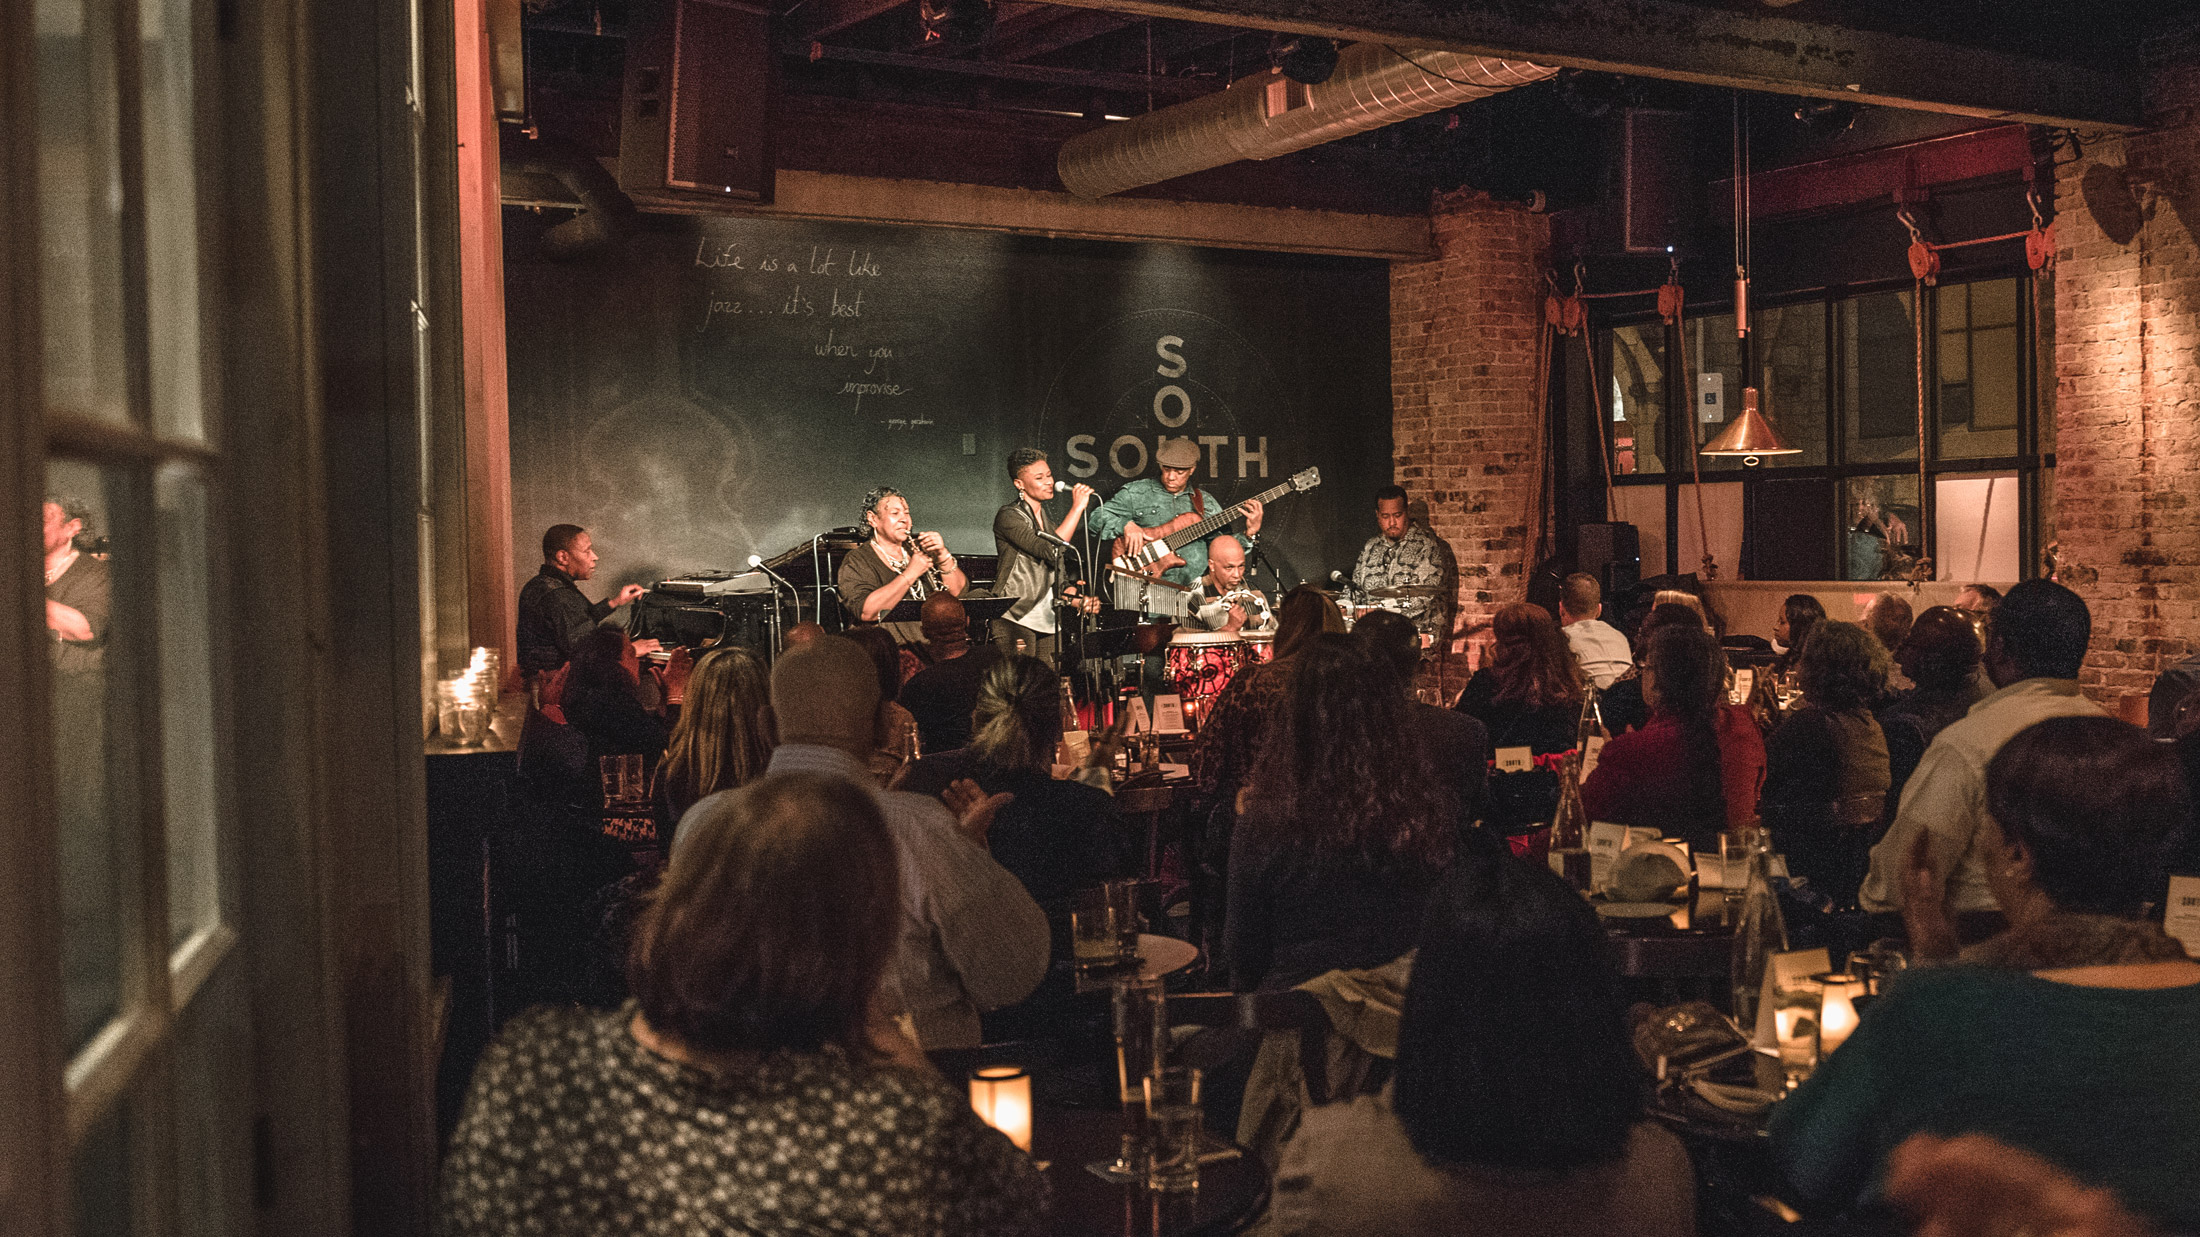 Jazz Christmas Shows In Phila 2020 Top Places to Listen to Live Jazz in Philadelphia — Visit Philadelphia